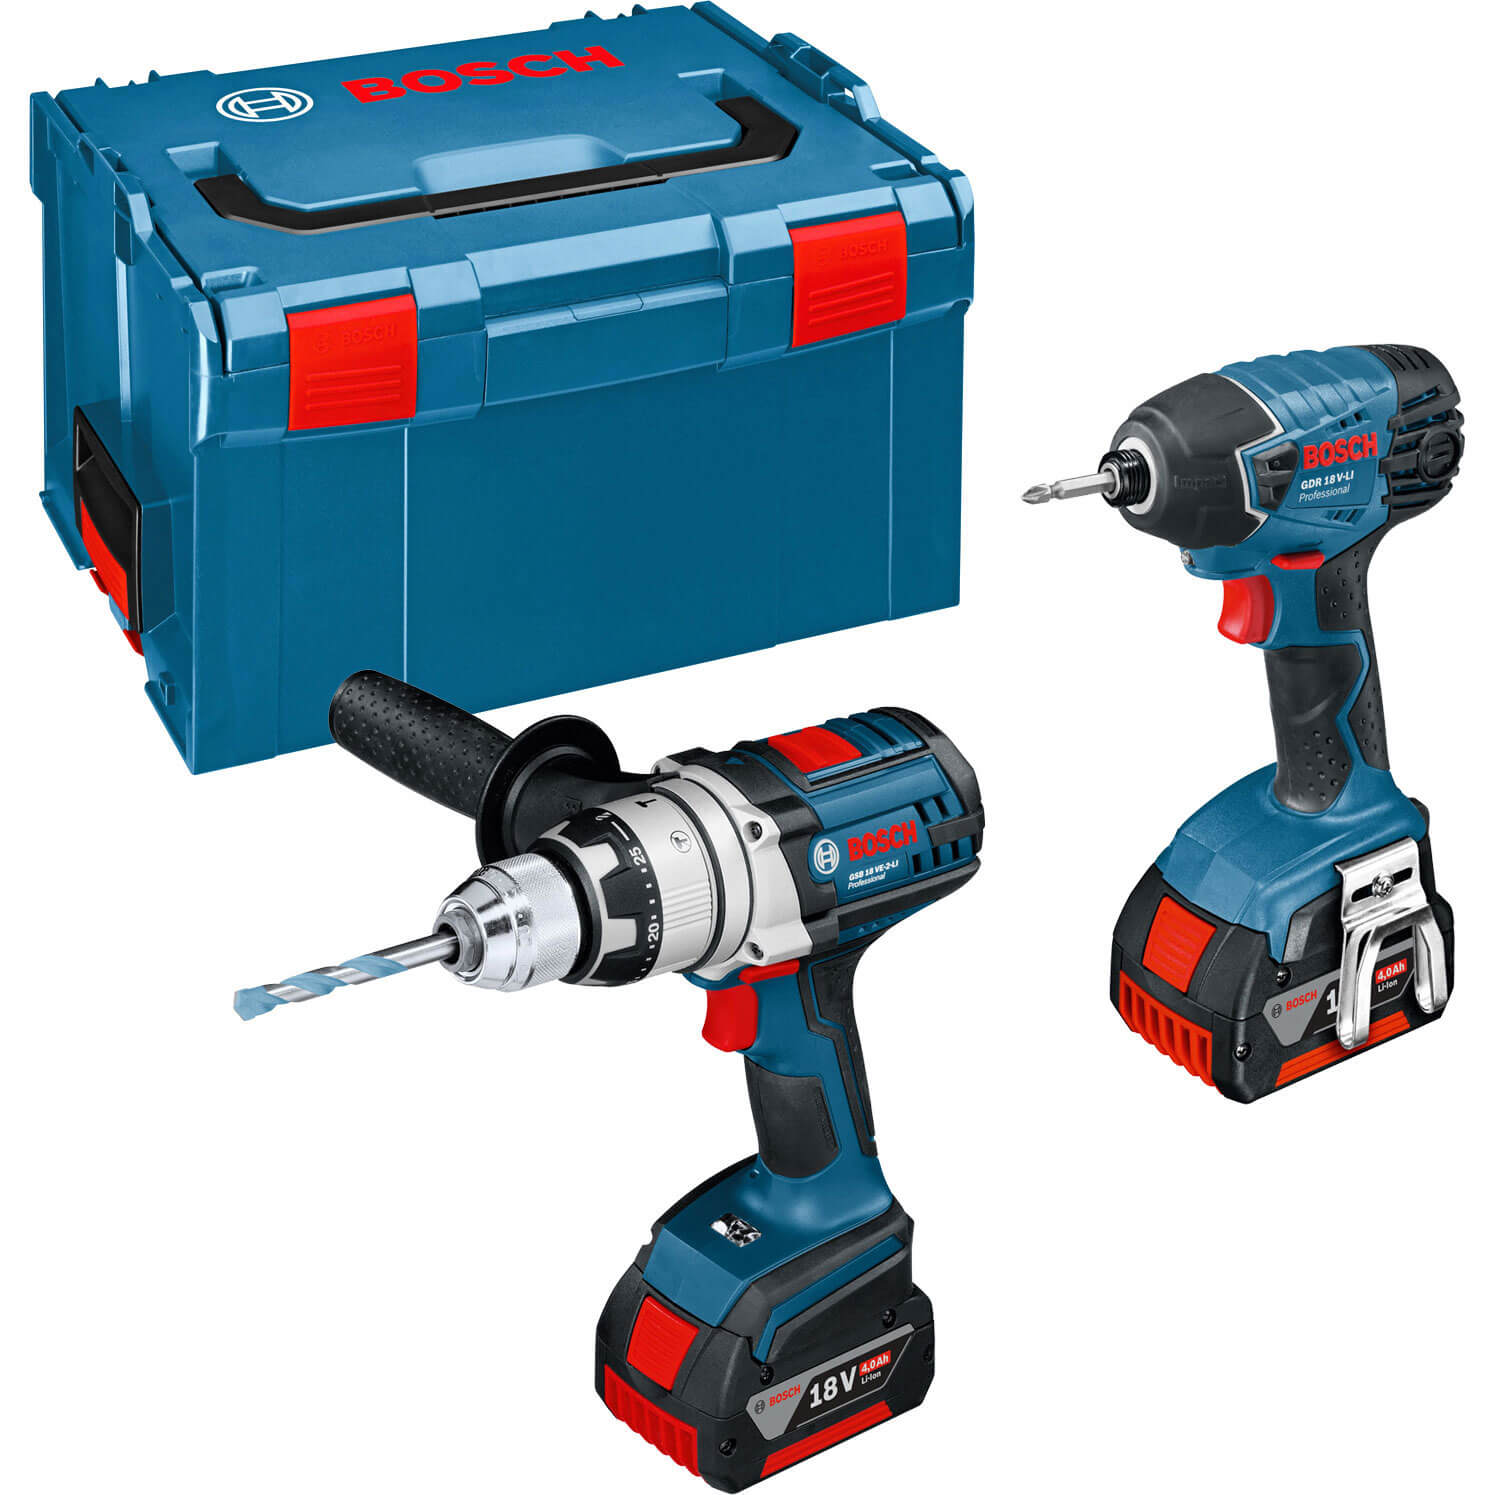 Bosch 18V Cordless Robustseries Combi Drill & Impact Driver 2 x 4ah Liion Charger Case